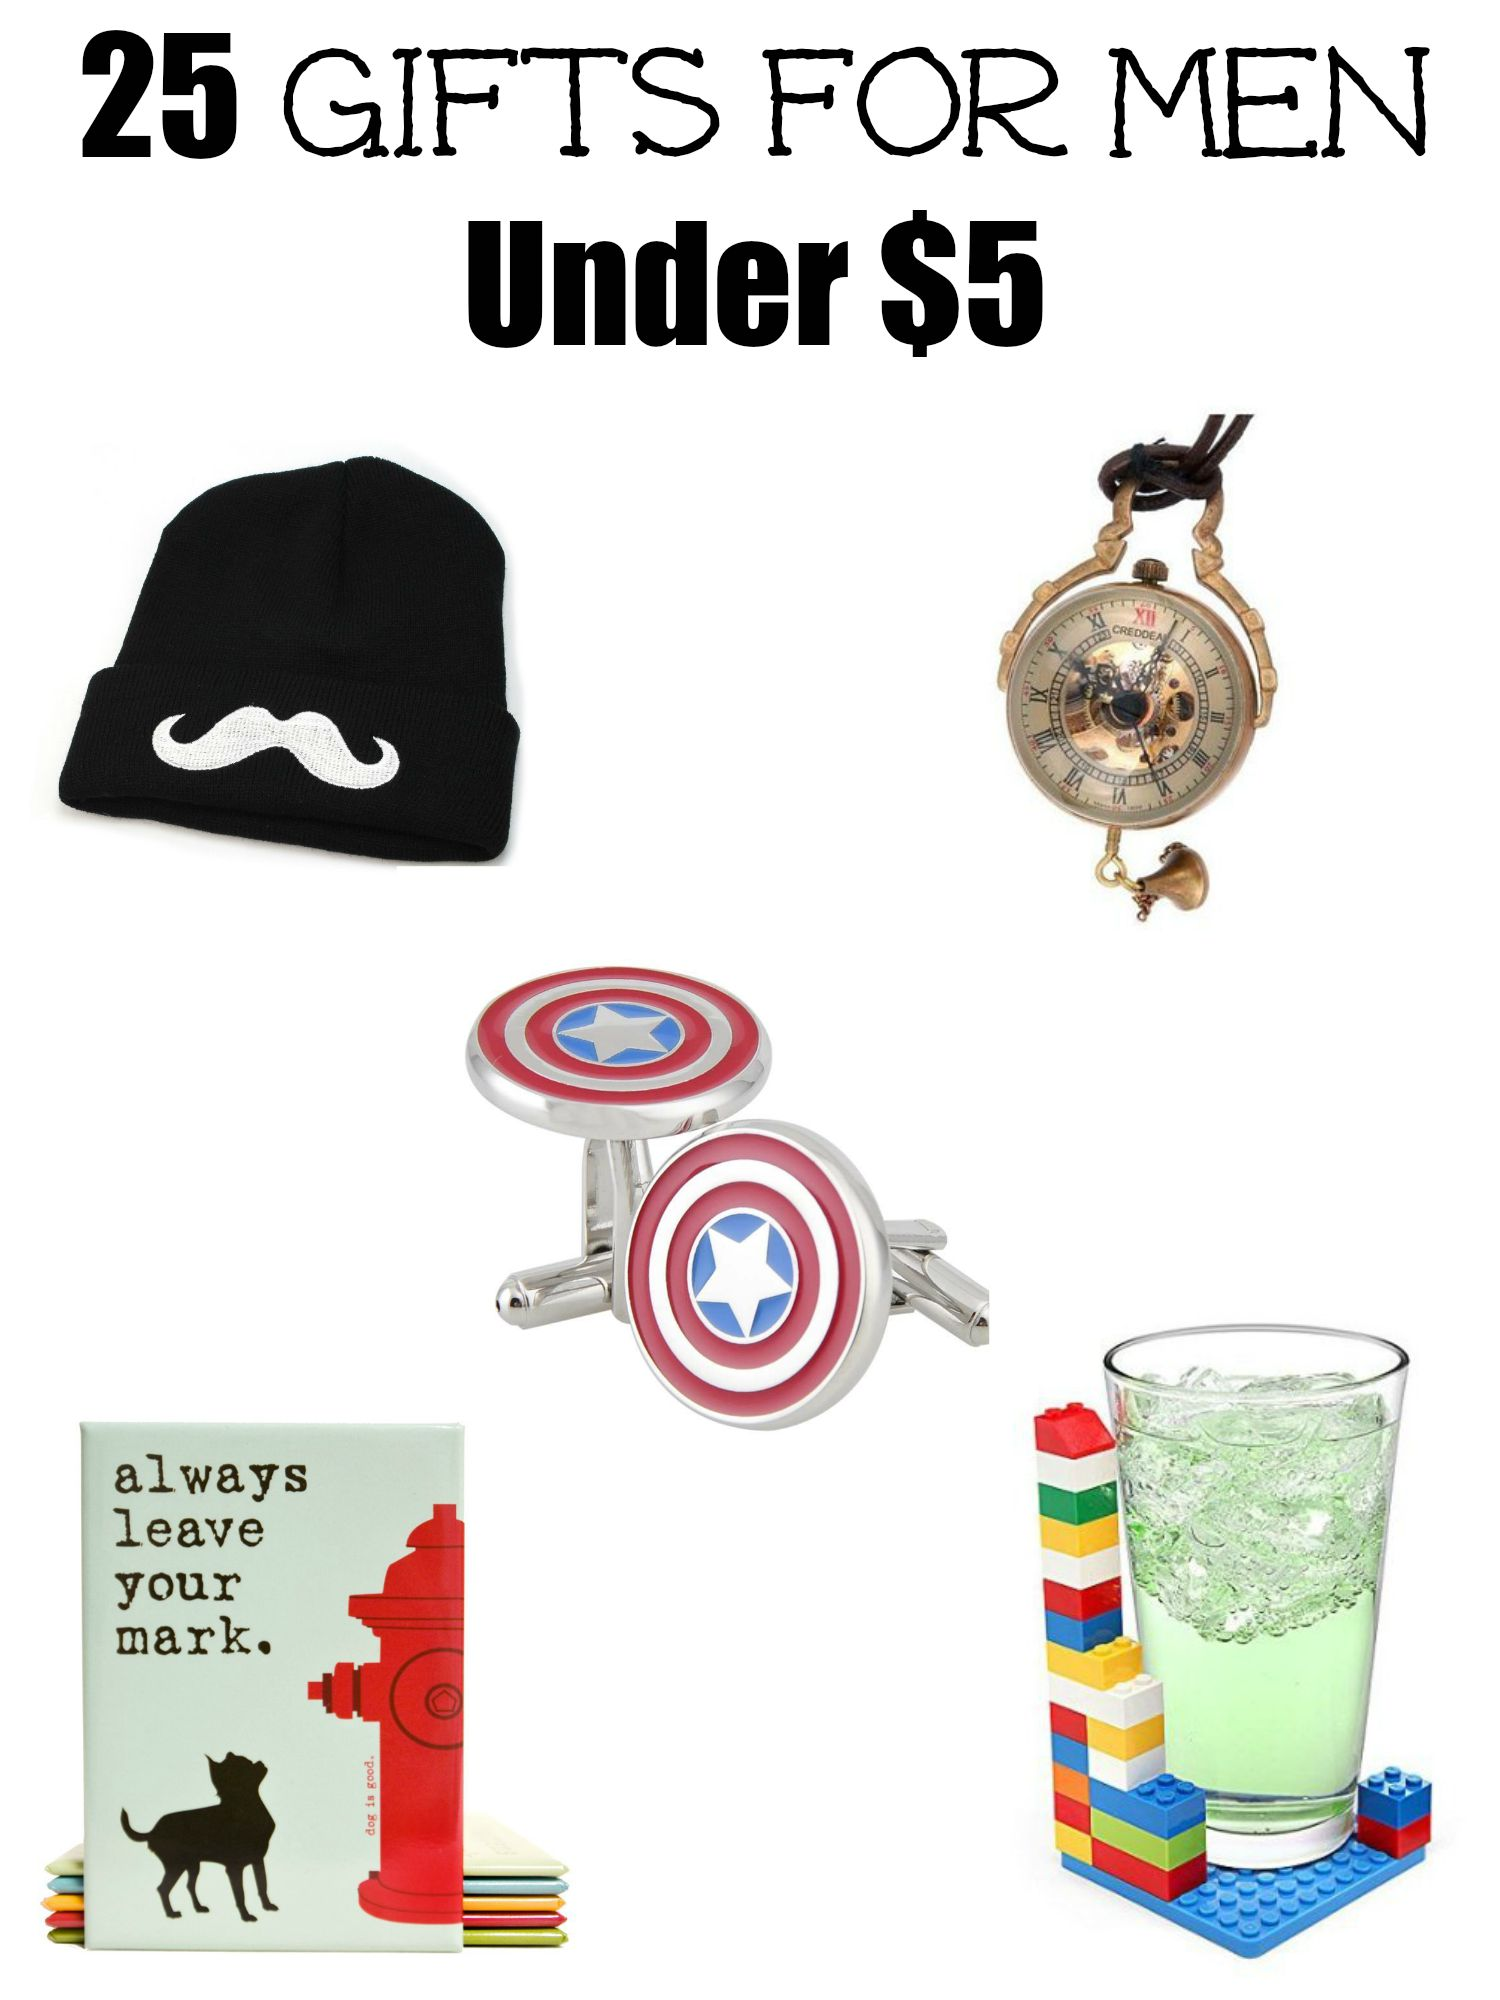 25 Gifts For Men Under $5